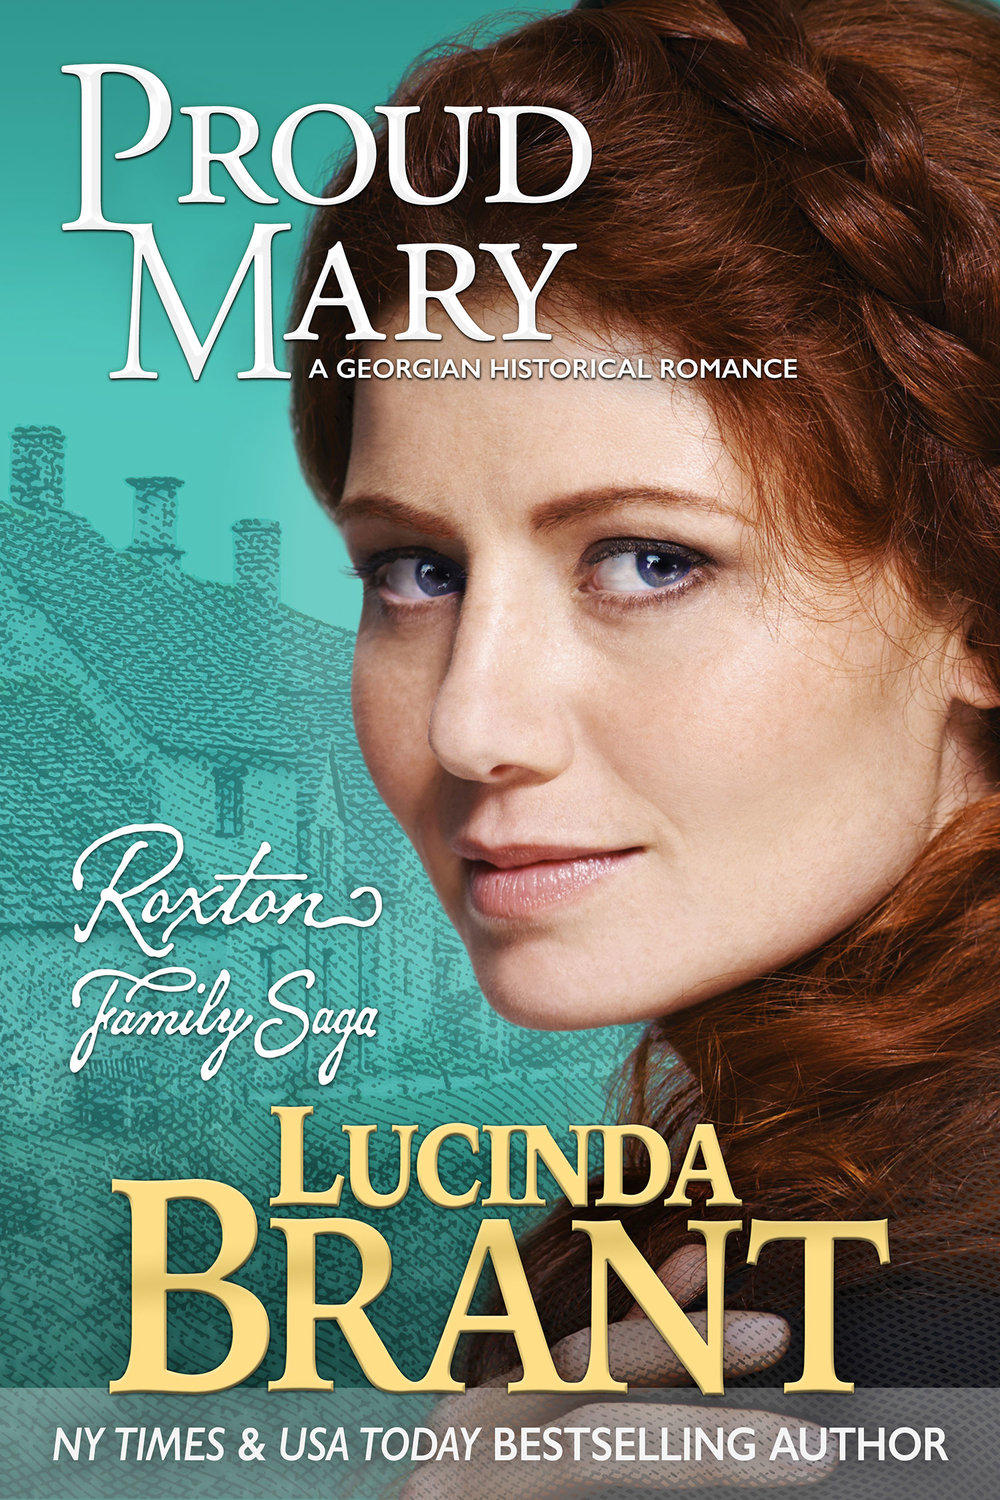 Proud Mary: A Georgian Historical Romance by Lucinda Brant